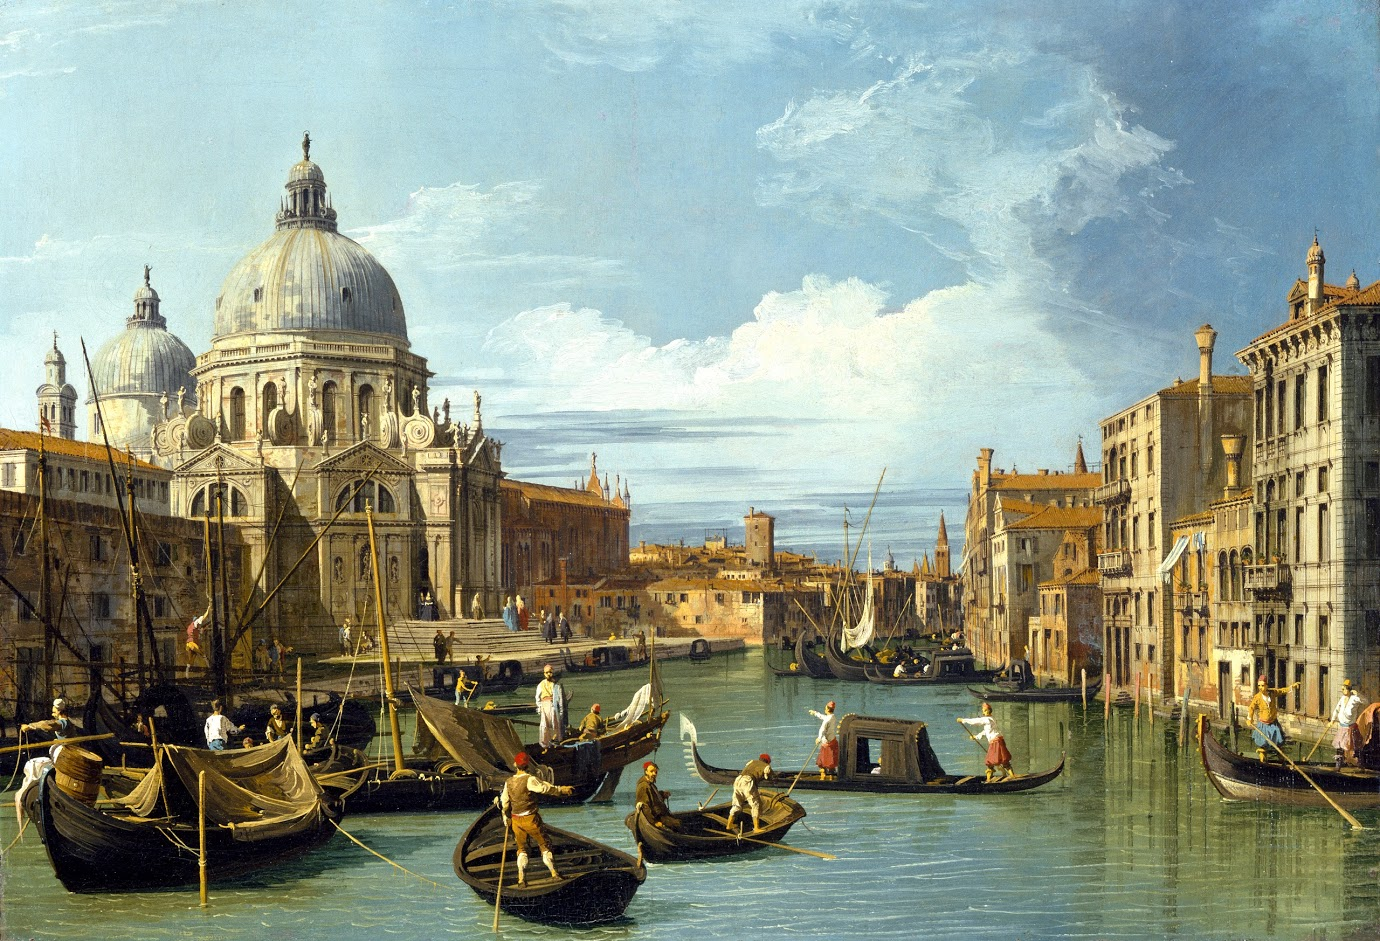 Giovanni Antonio Canal, Entrance to the Grand Canal